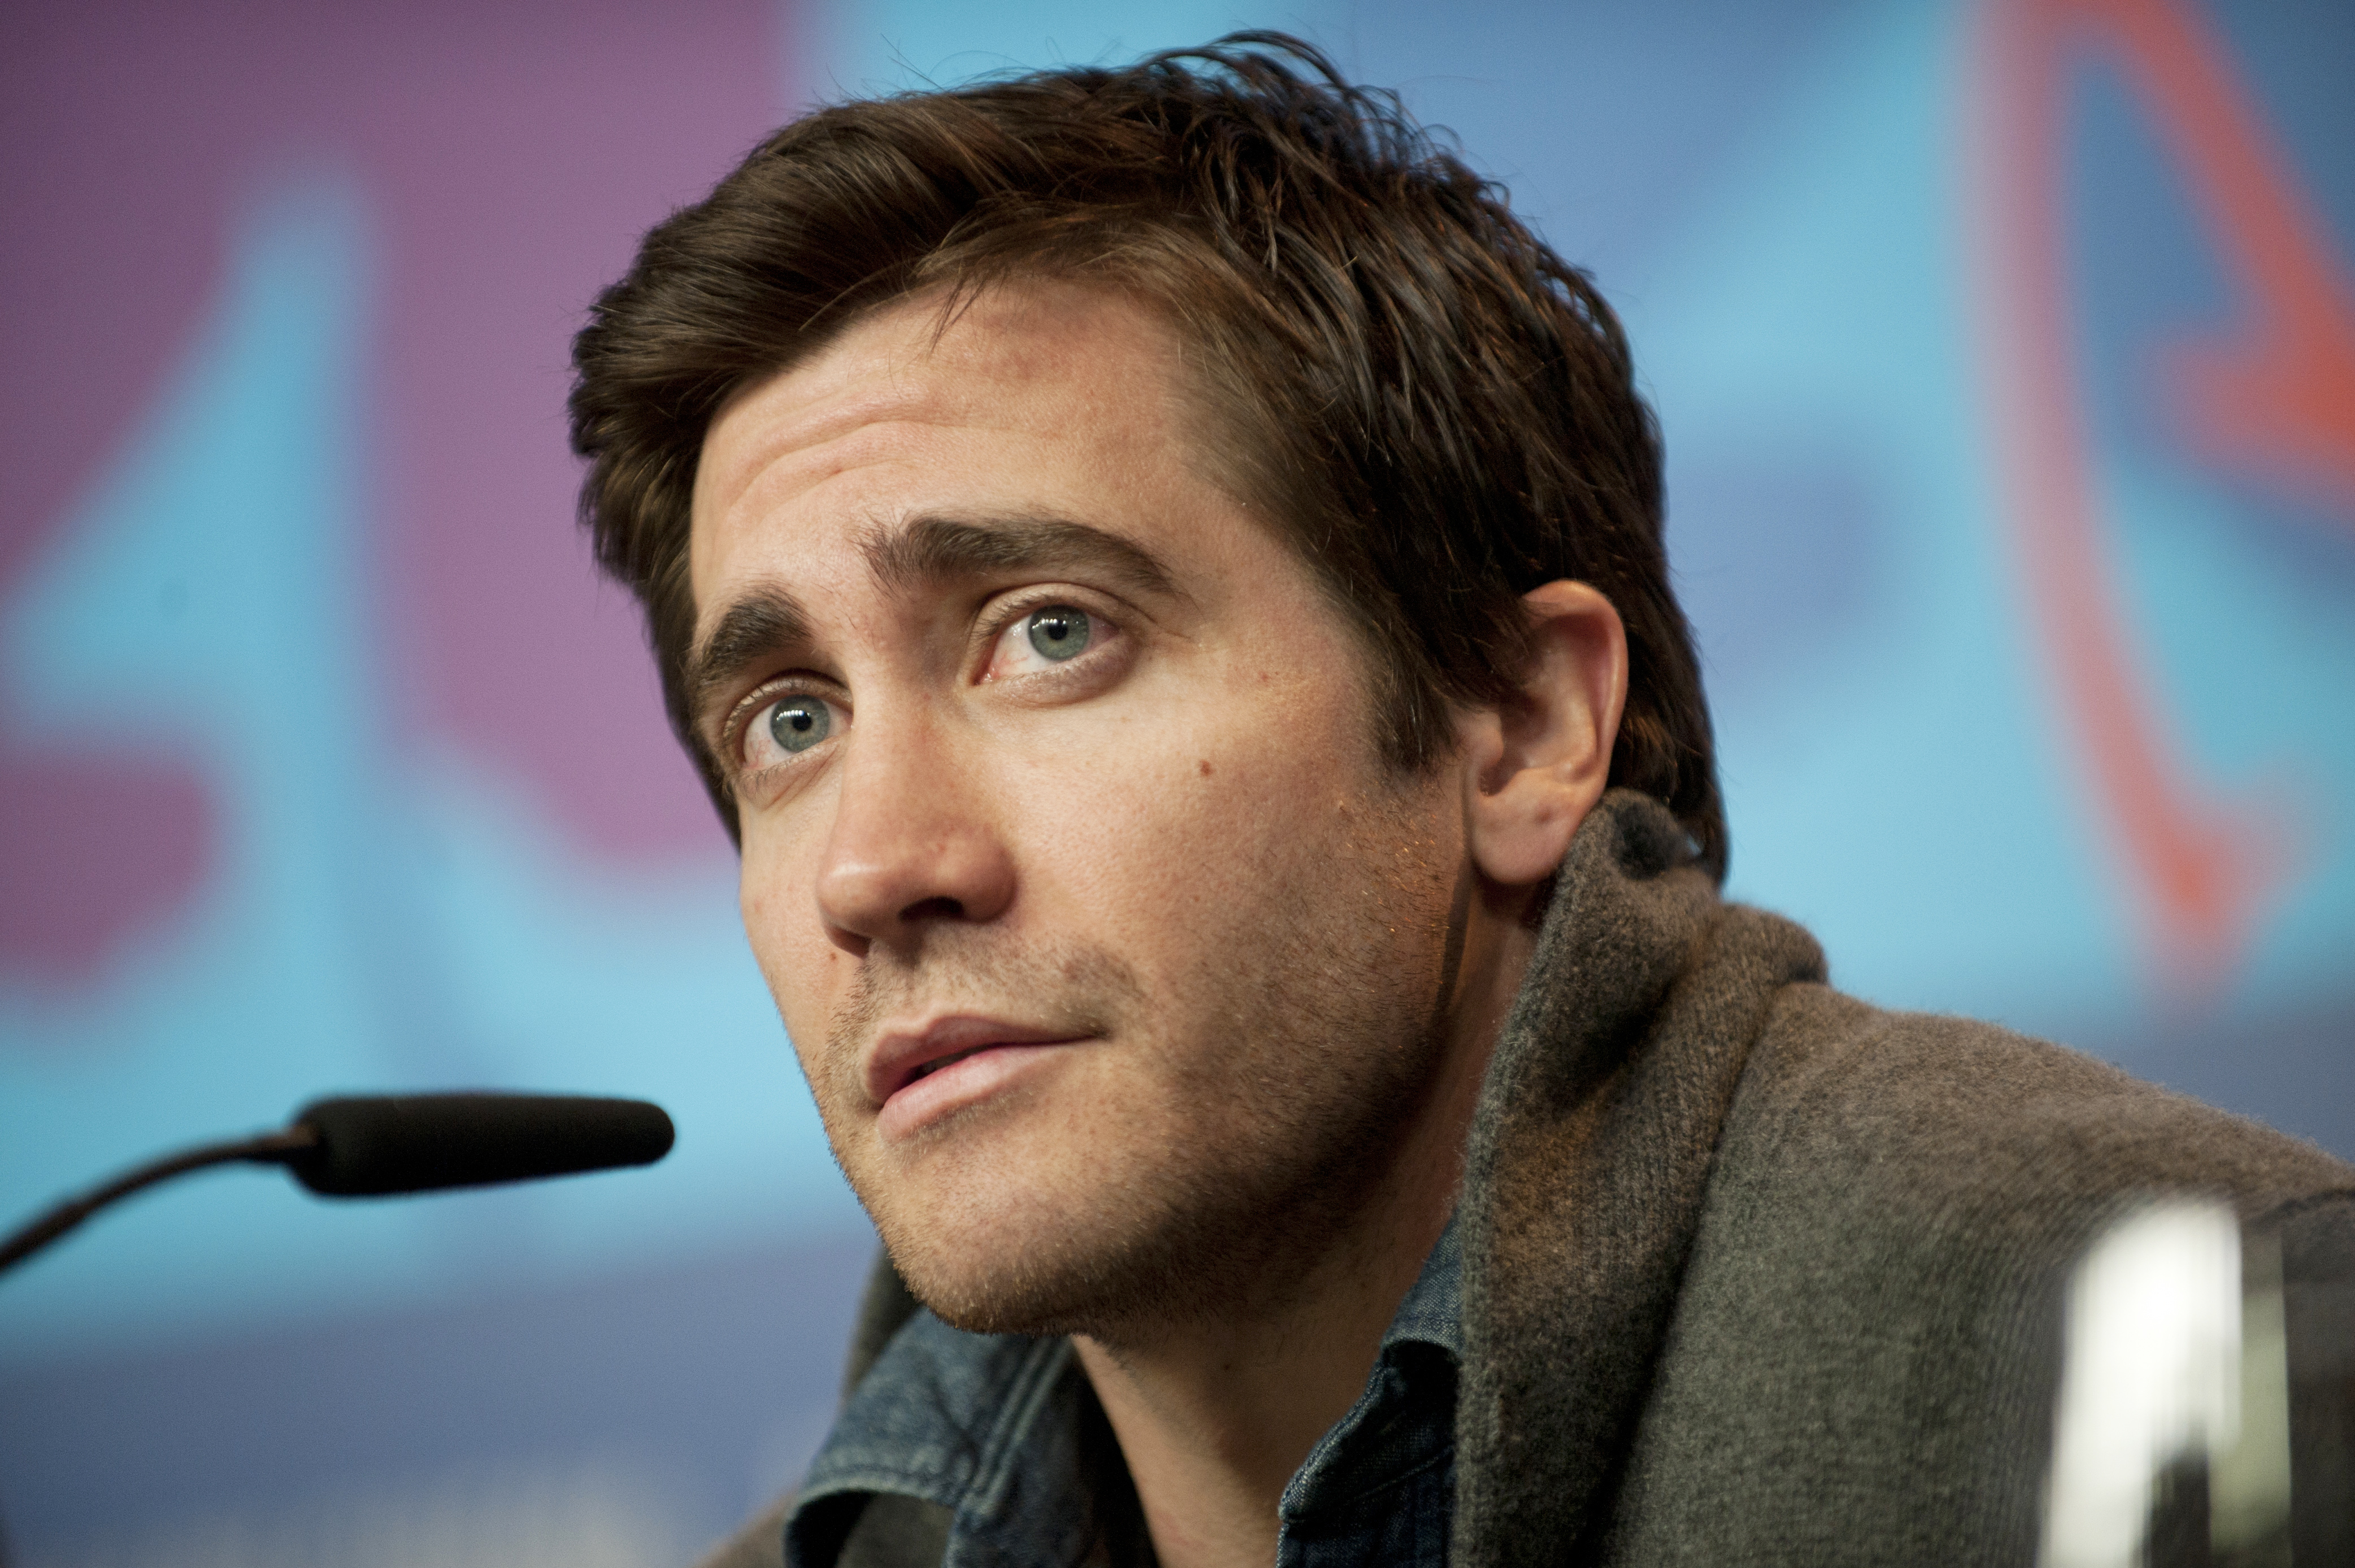 Is Jake Gyllenhaal Single? Its Time For An Update On The